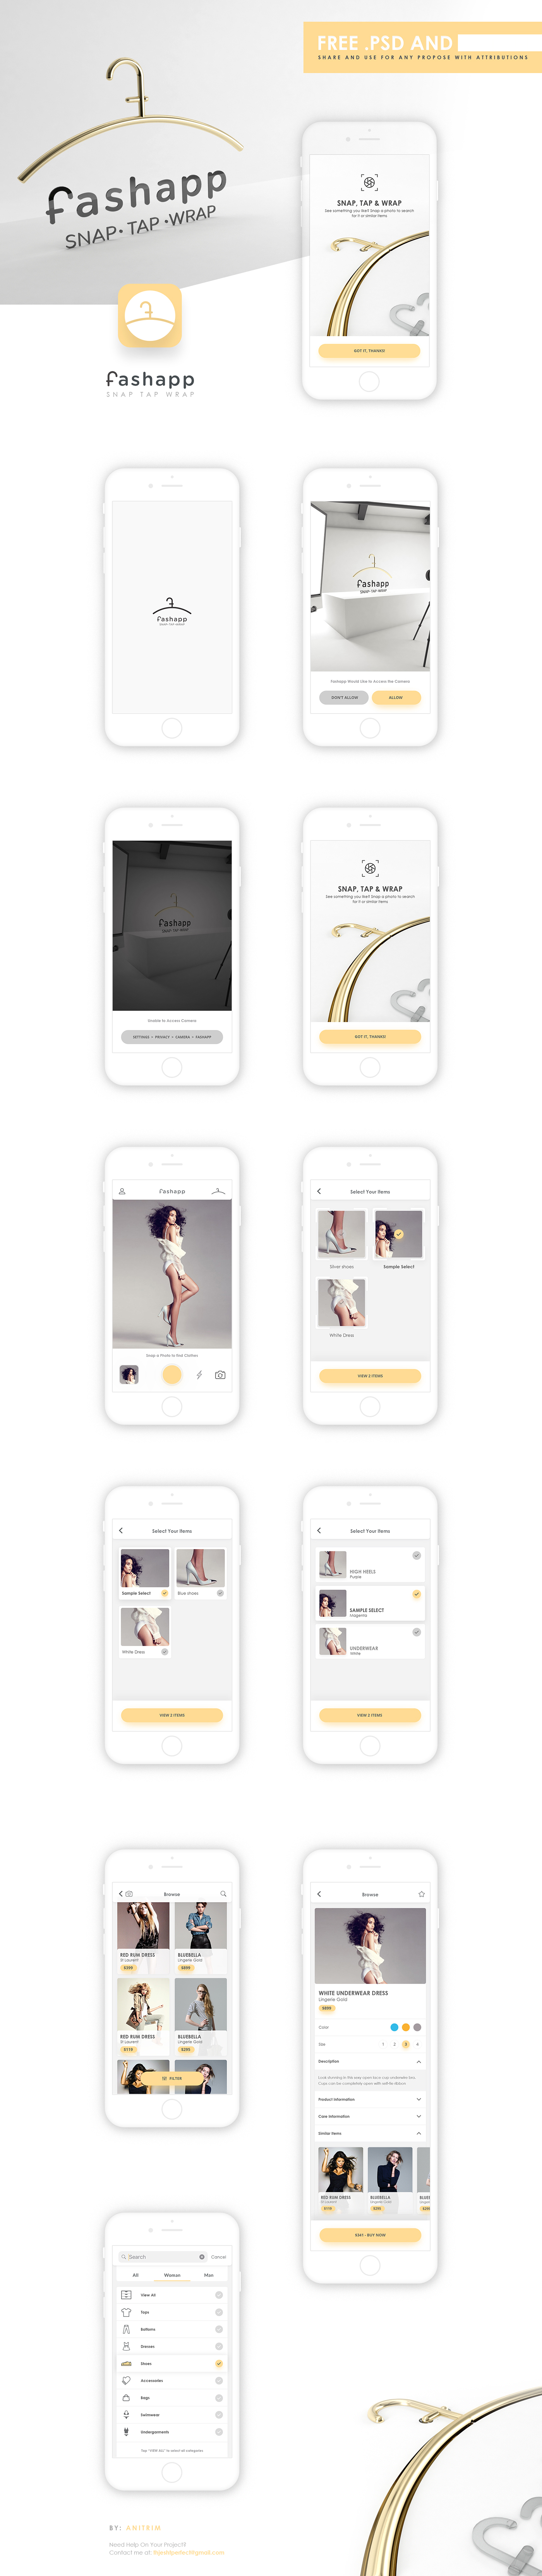 Fashion  app iphone UI psd photoshop download Photography  iOS11